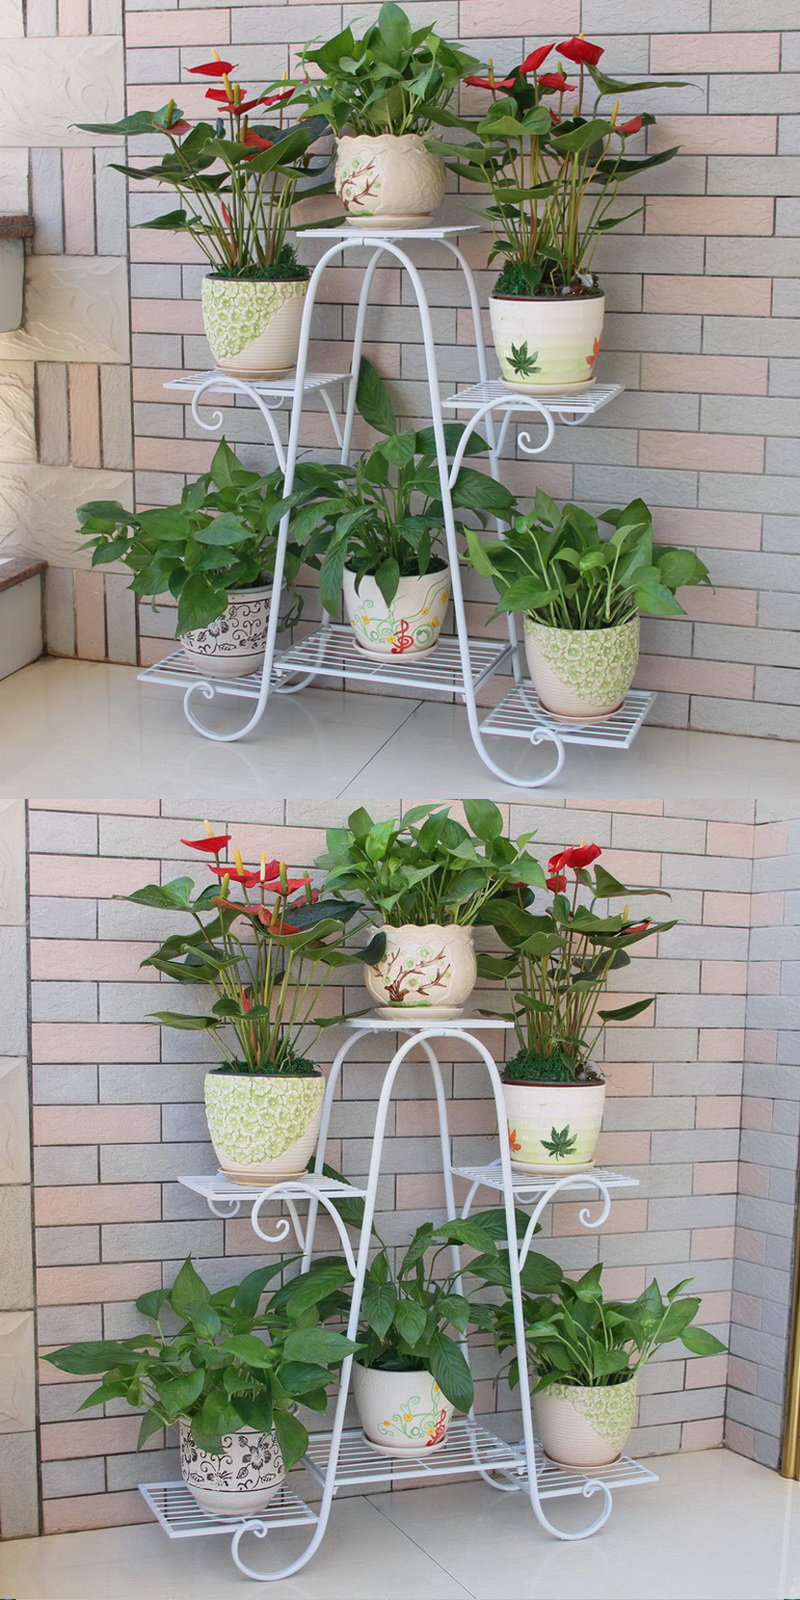 6 Tier Metal Plant Stand Shelf Foldable Screen White